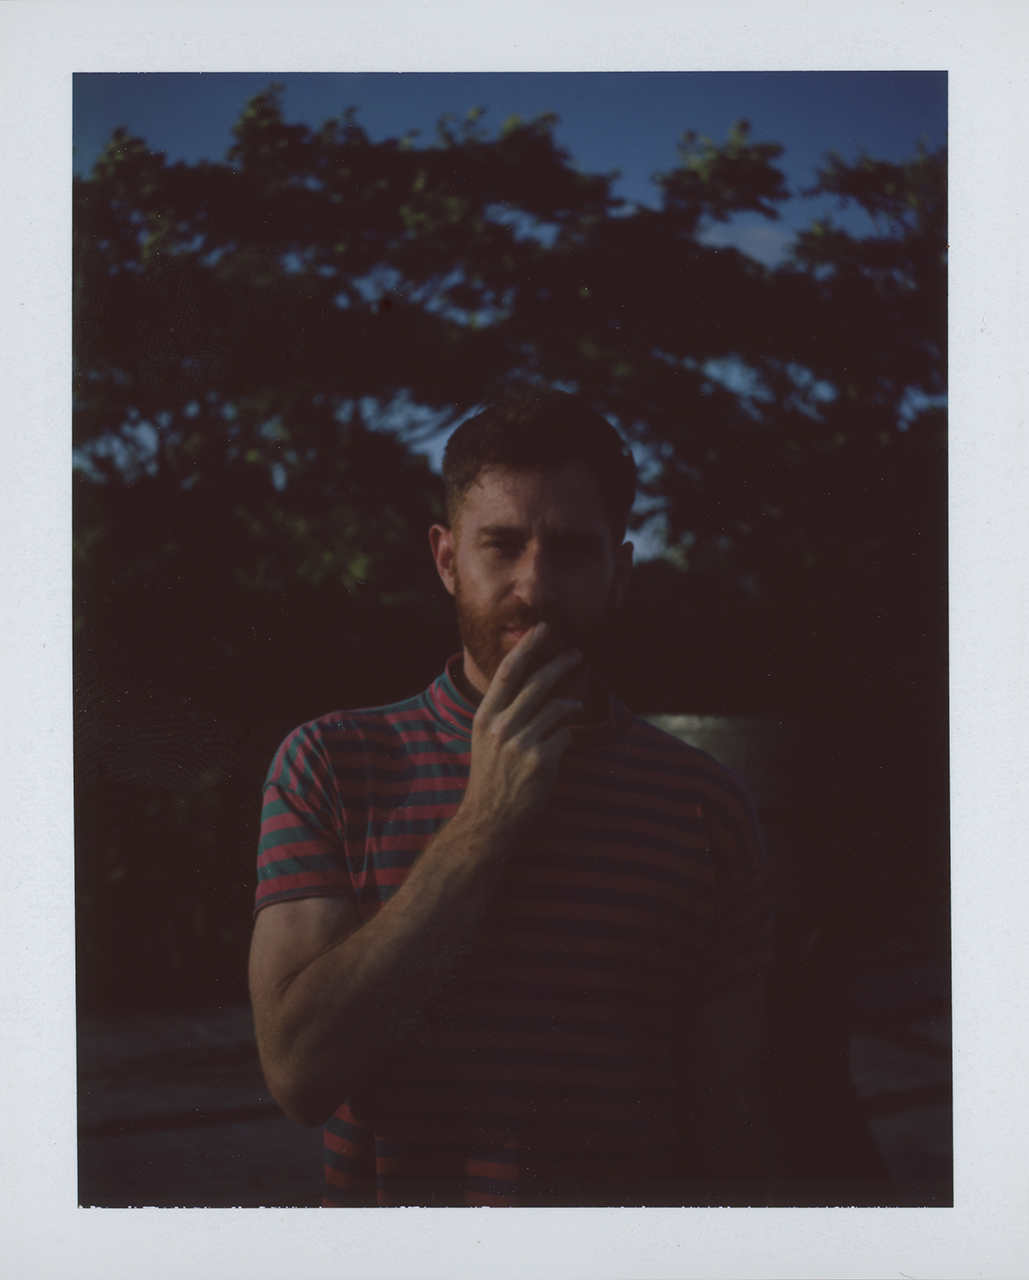 Paul Zivkovich on FP-100C